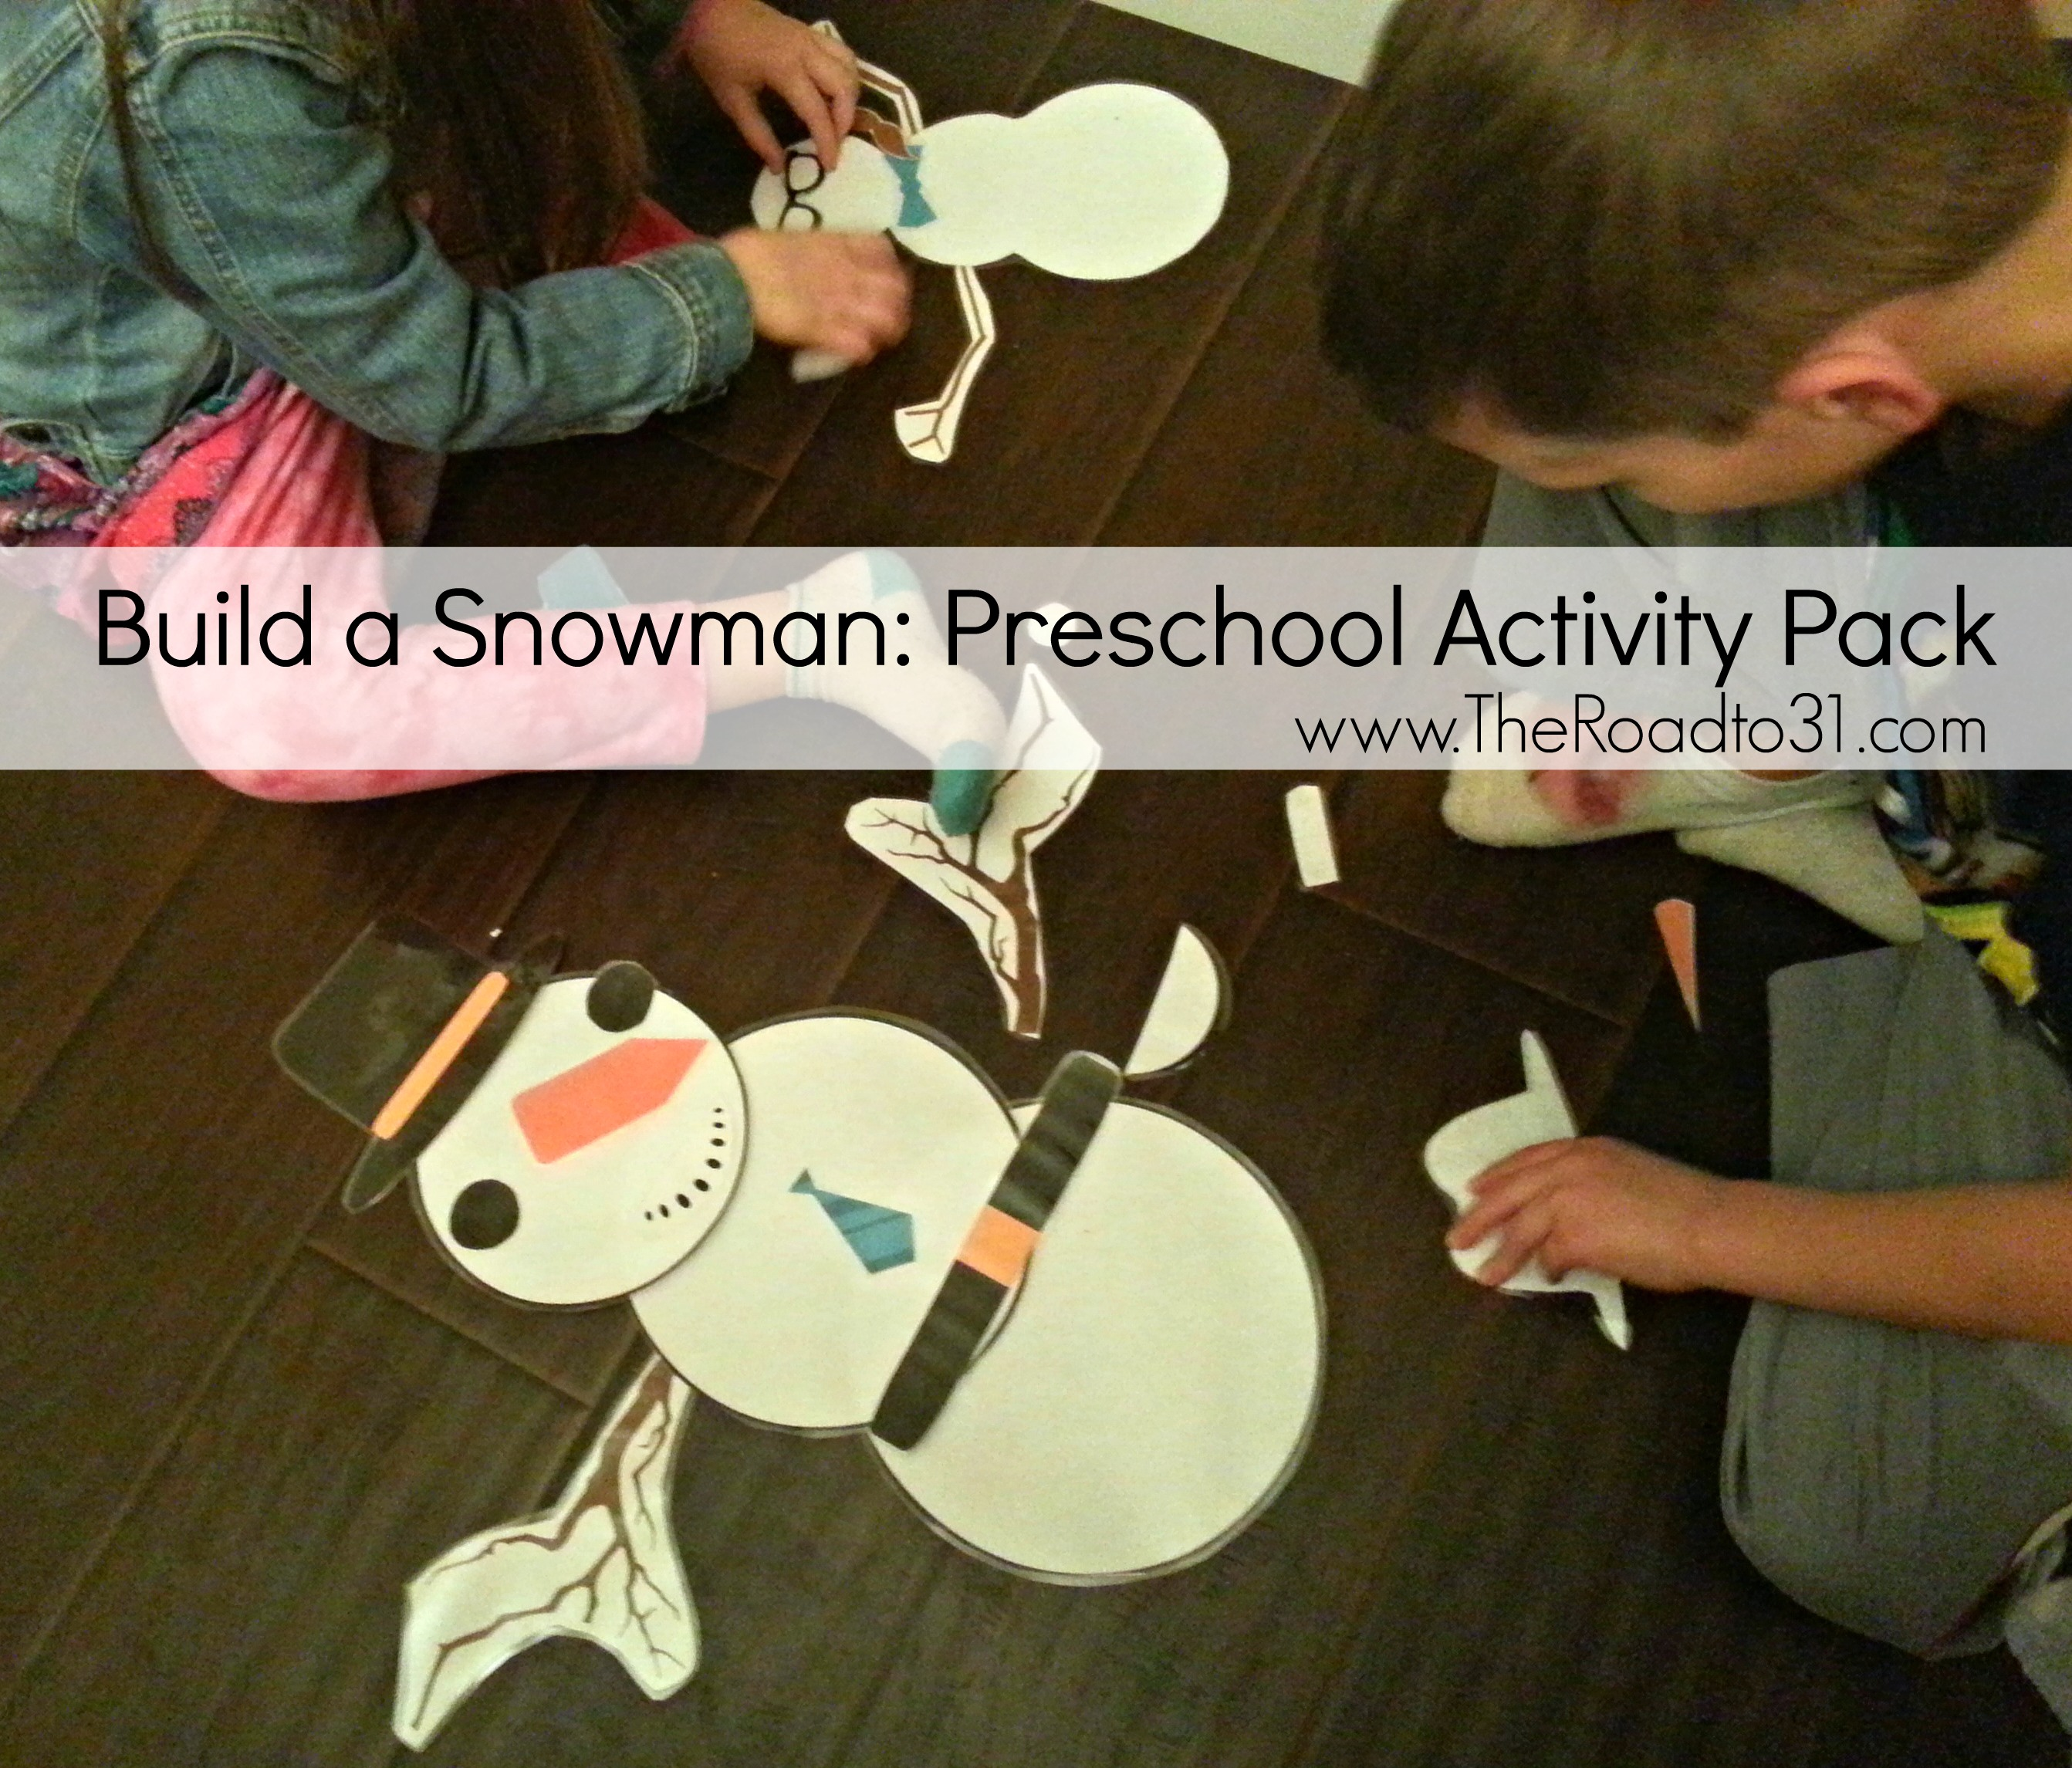 Build a Snowman Example